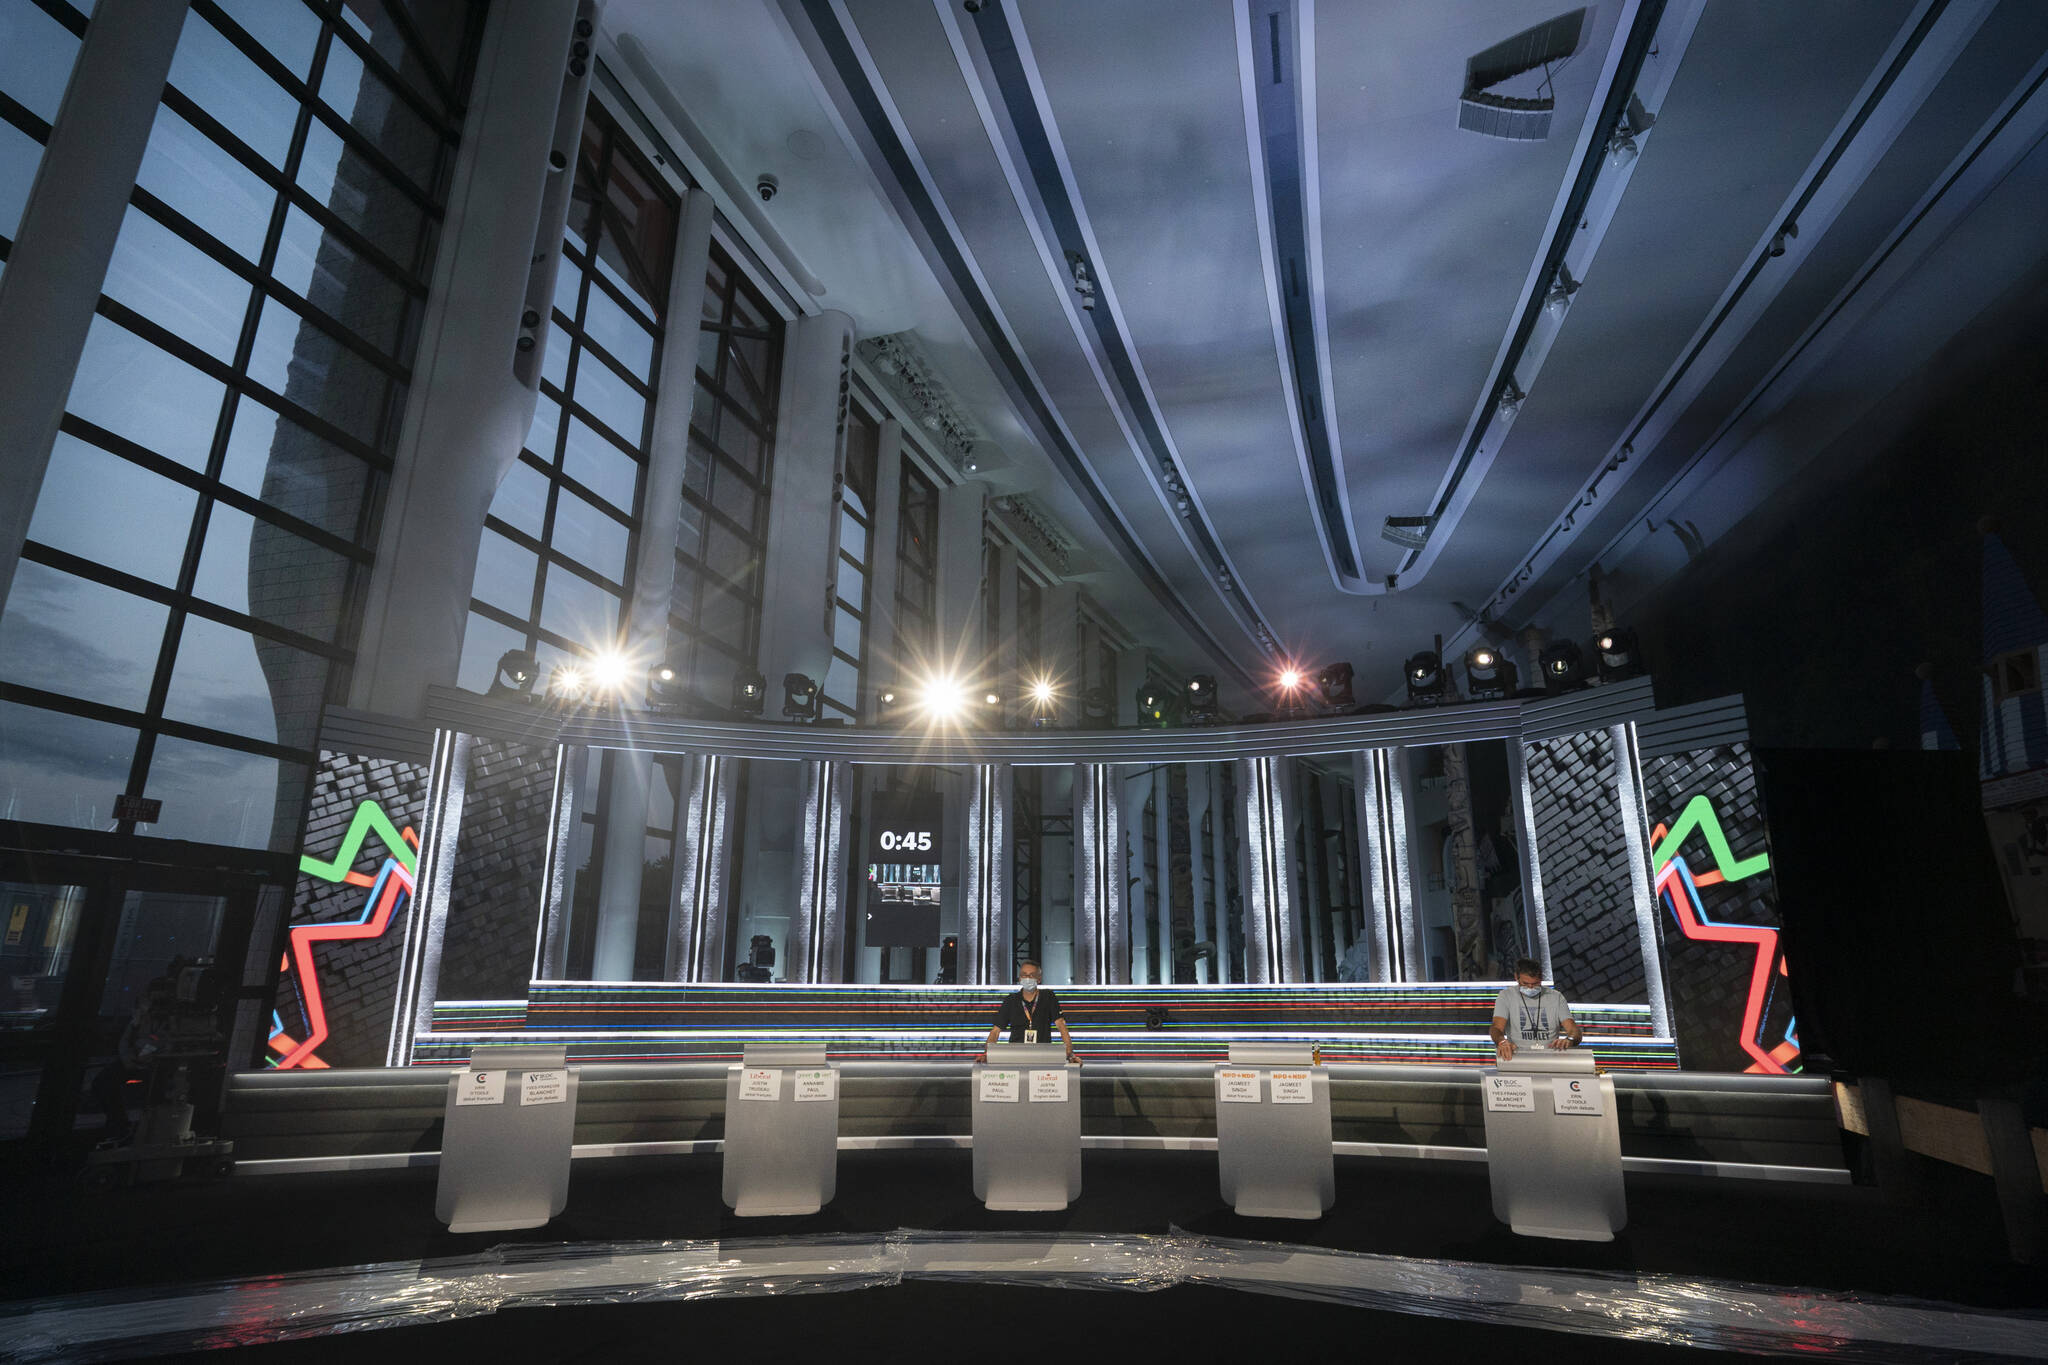 A view of the set for the French language federal election leaders' debate is shown at the Museum of Canadian History in Gatineau, Que. on Monday, Sept.6, 2021. THE CANADIAN PRESS/HO-Radio-Canada/Ivanoh Demers